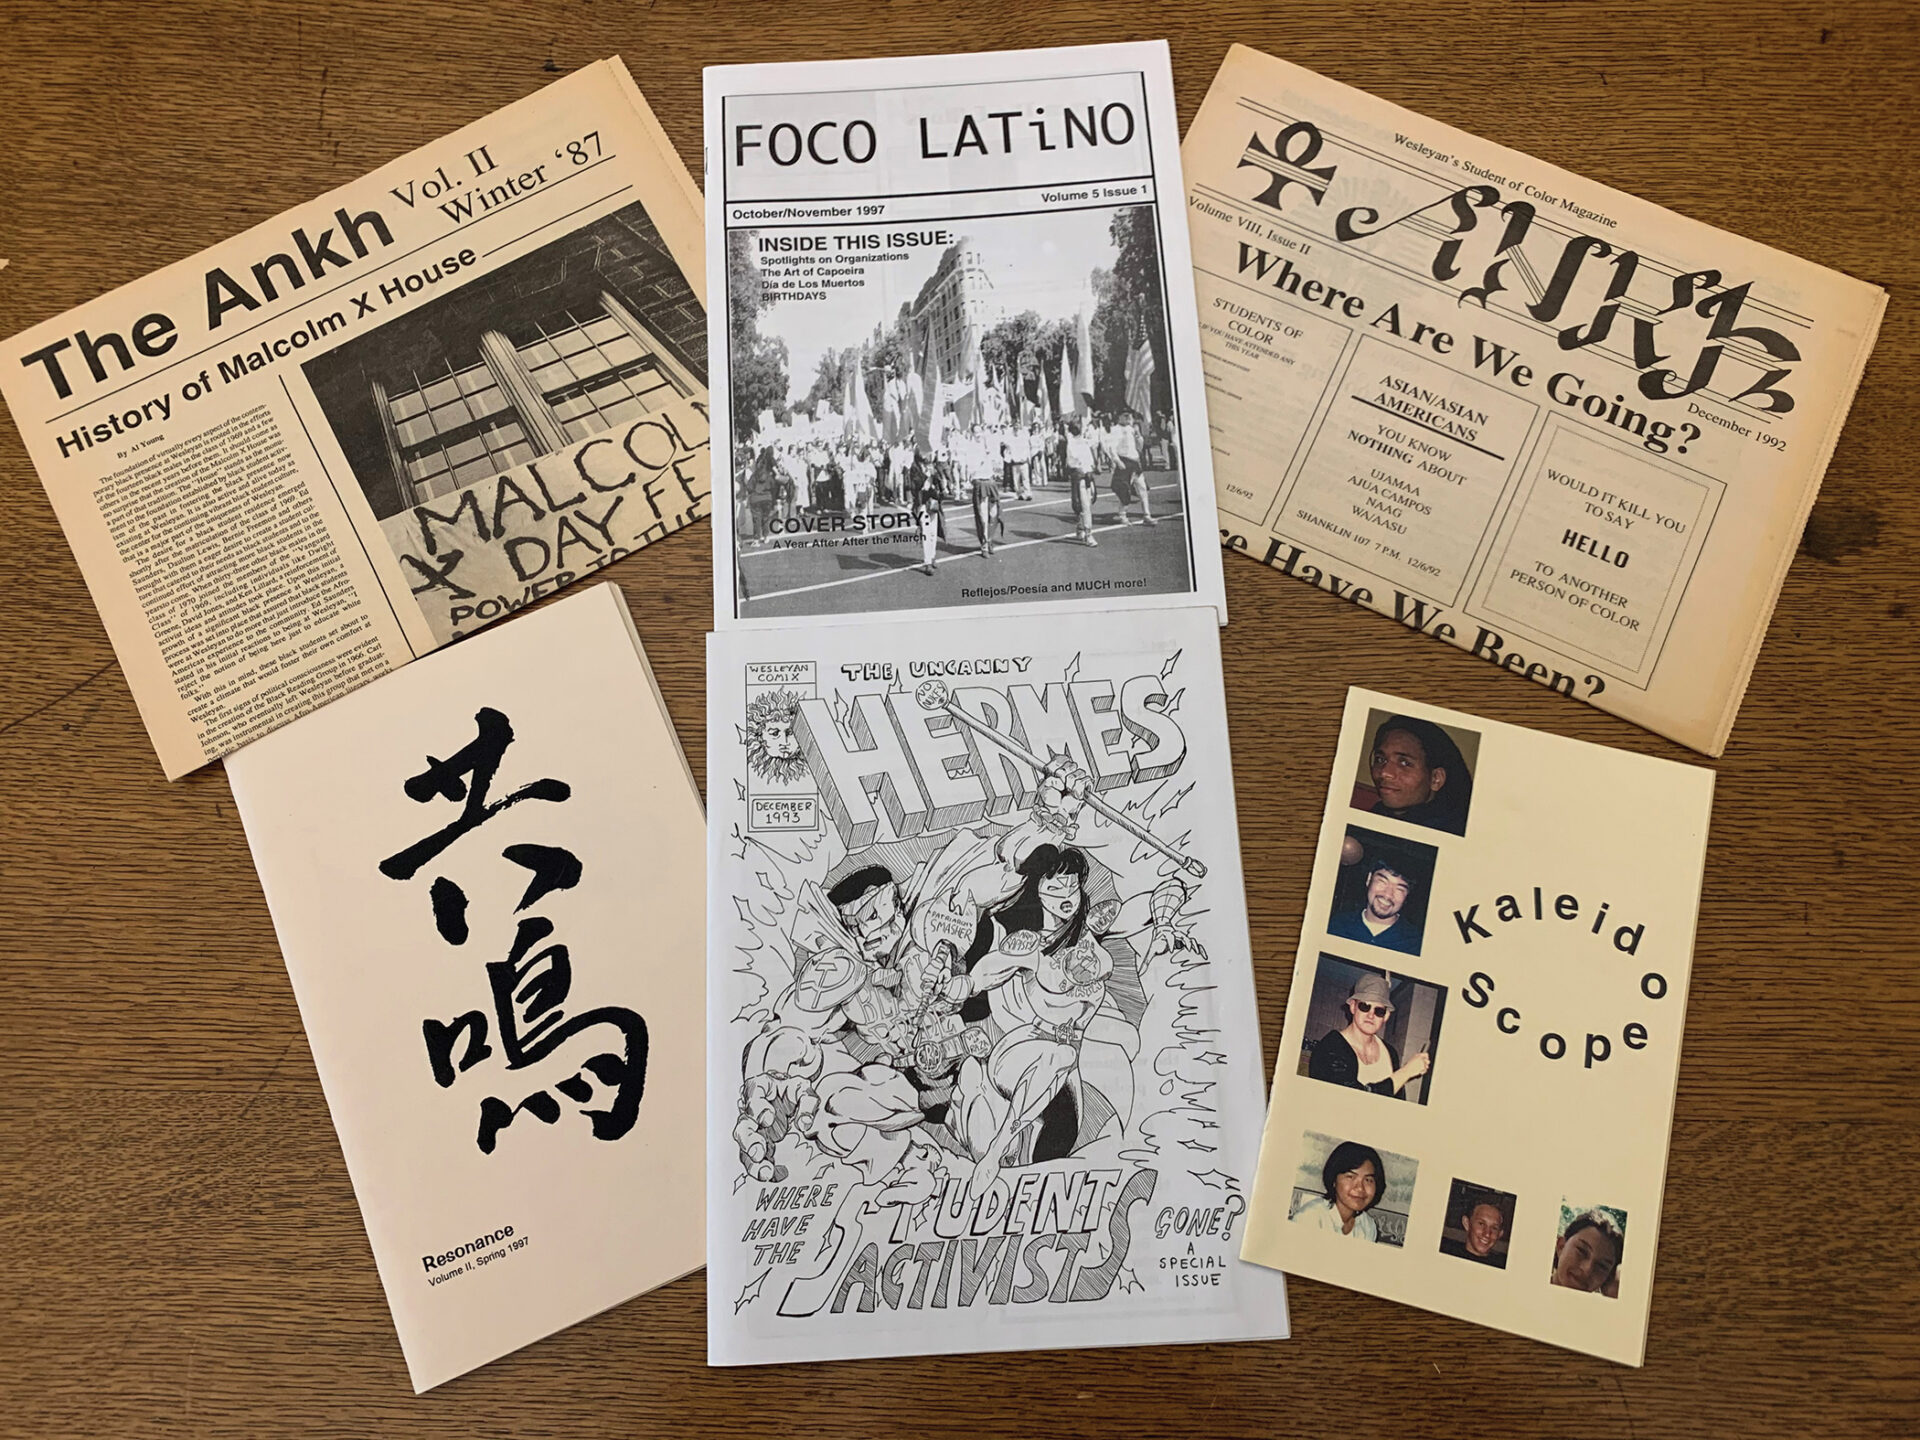 Historical Row: Student Groups as Signs of the Times